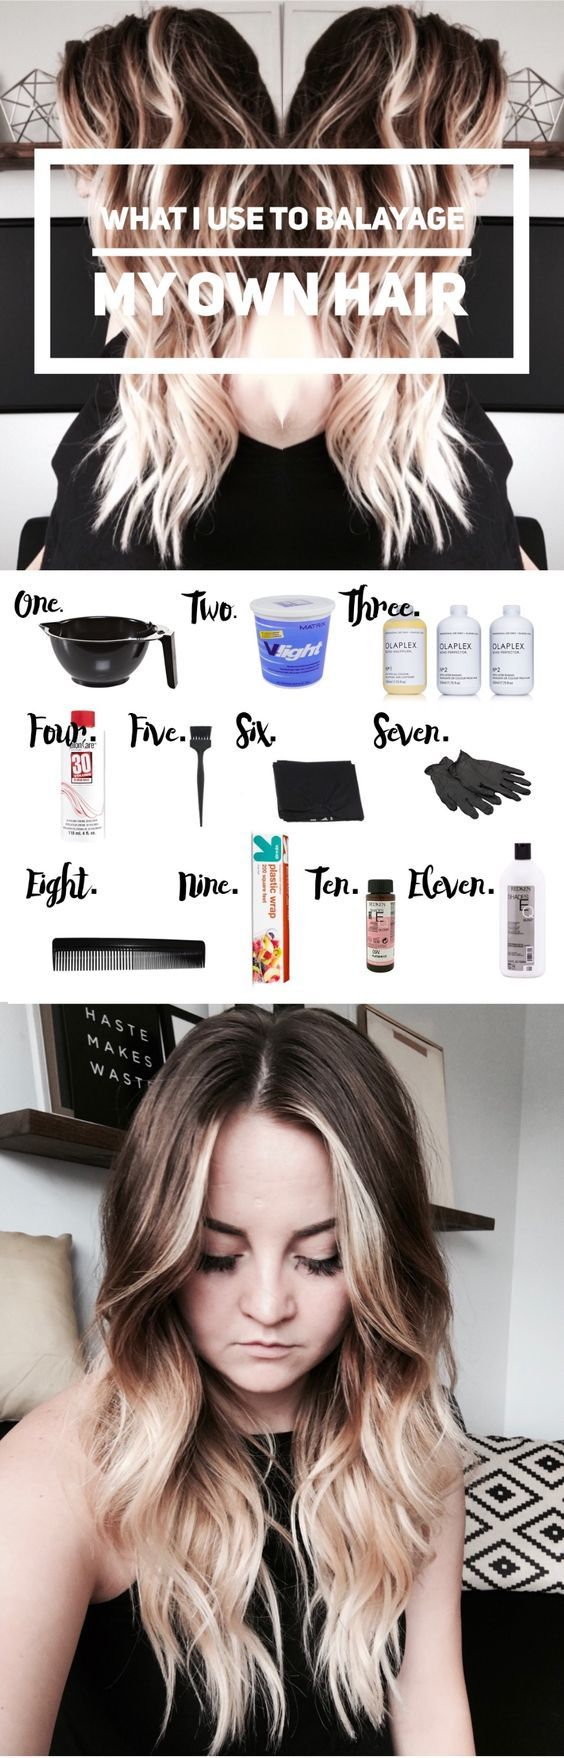 Learn how I do my own balayage so you can do it at home!